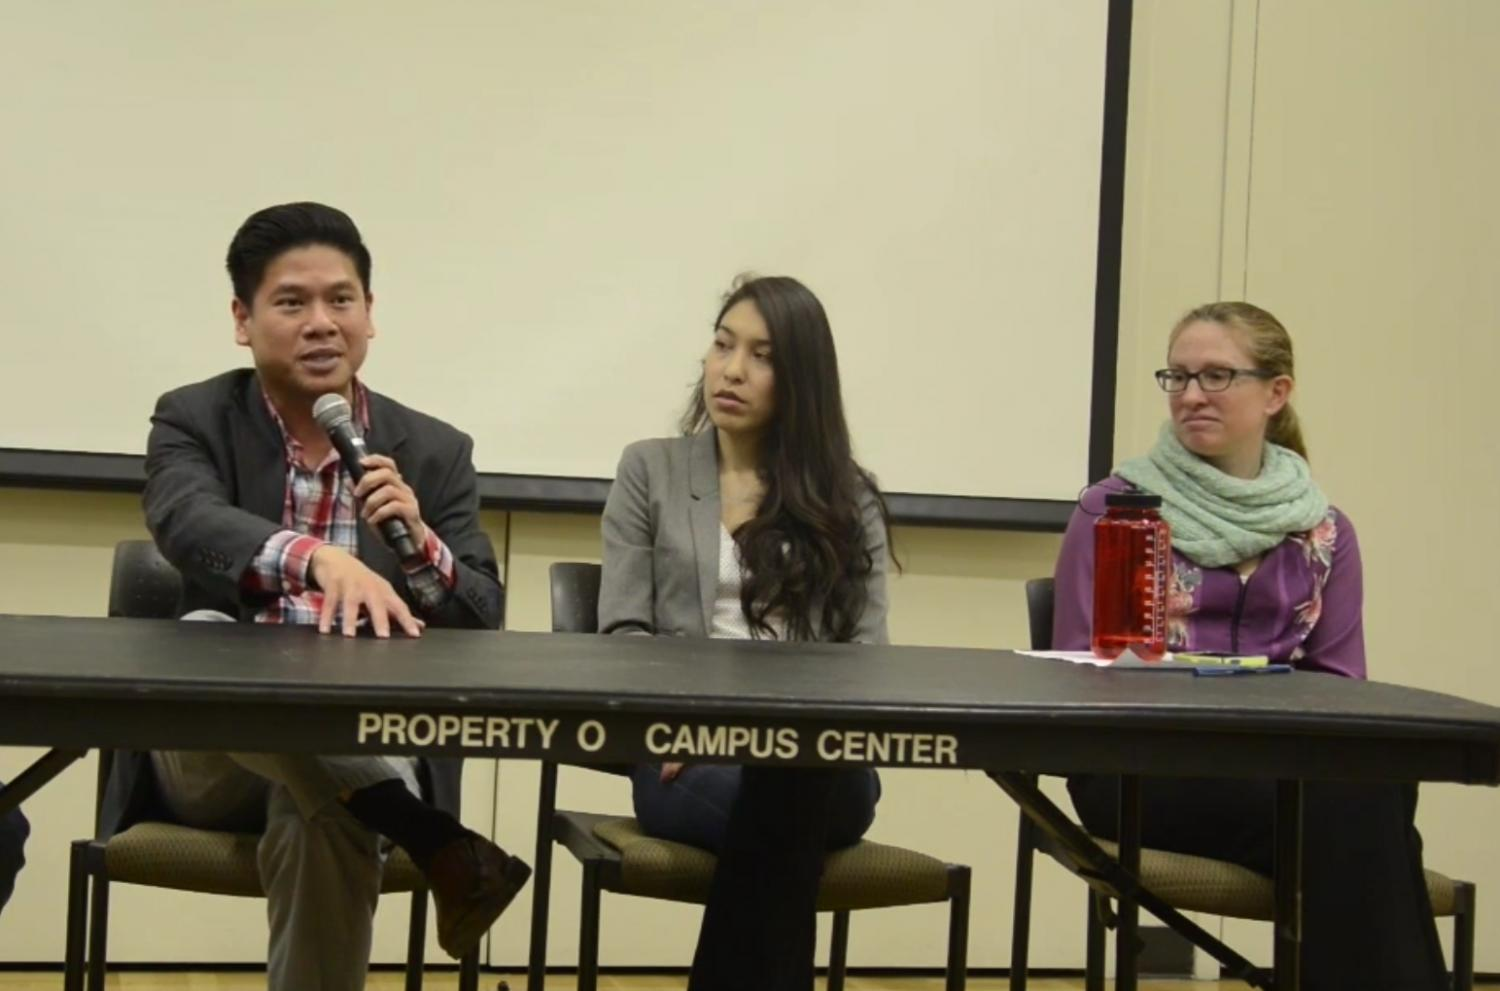 Panel organized by De Anza Renters Rights Campaign, featuring Councilman Lan Diep.